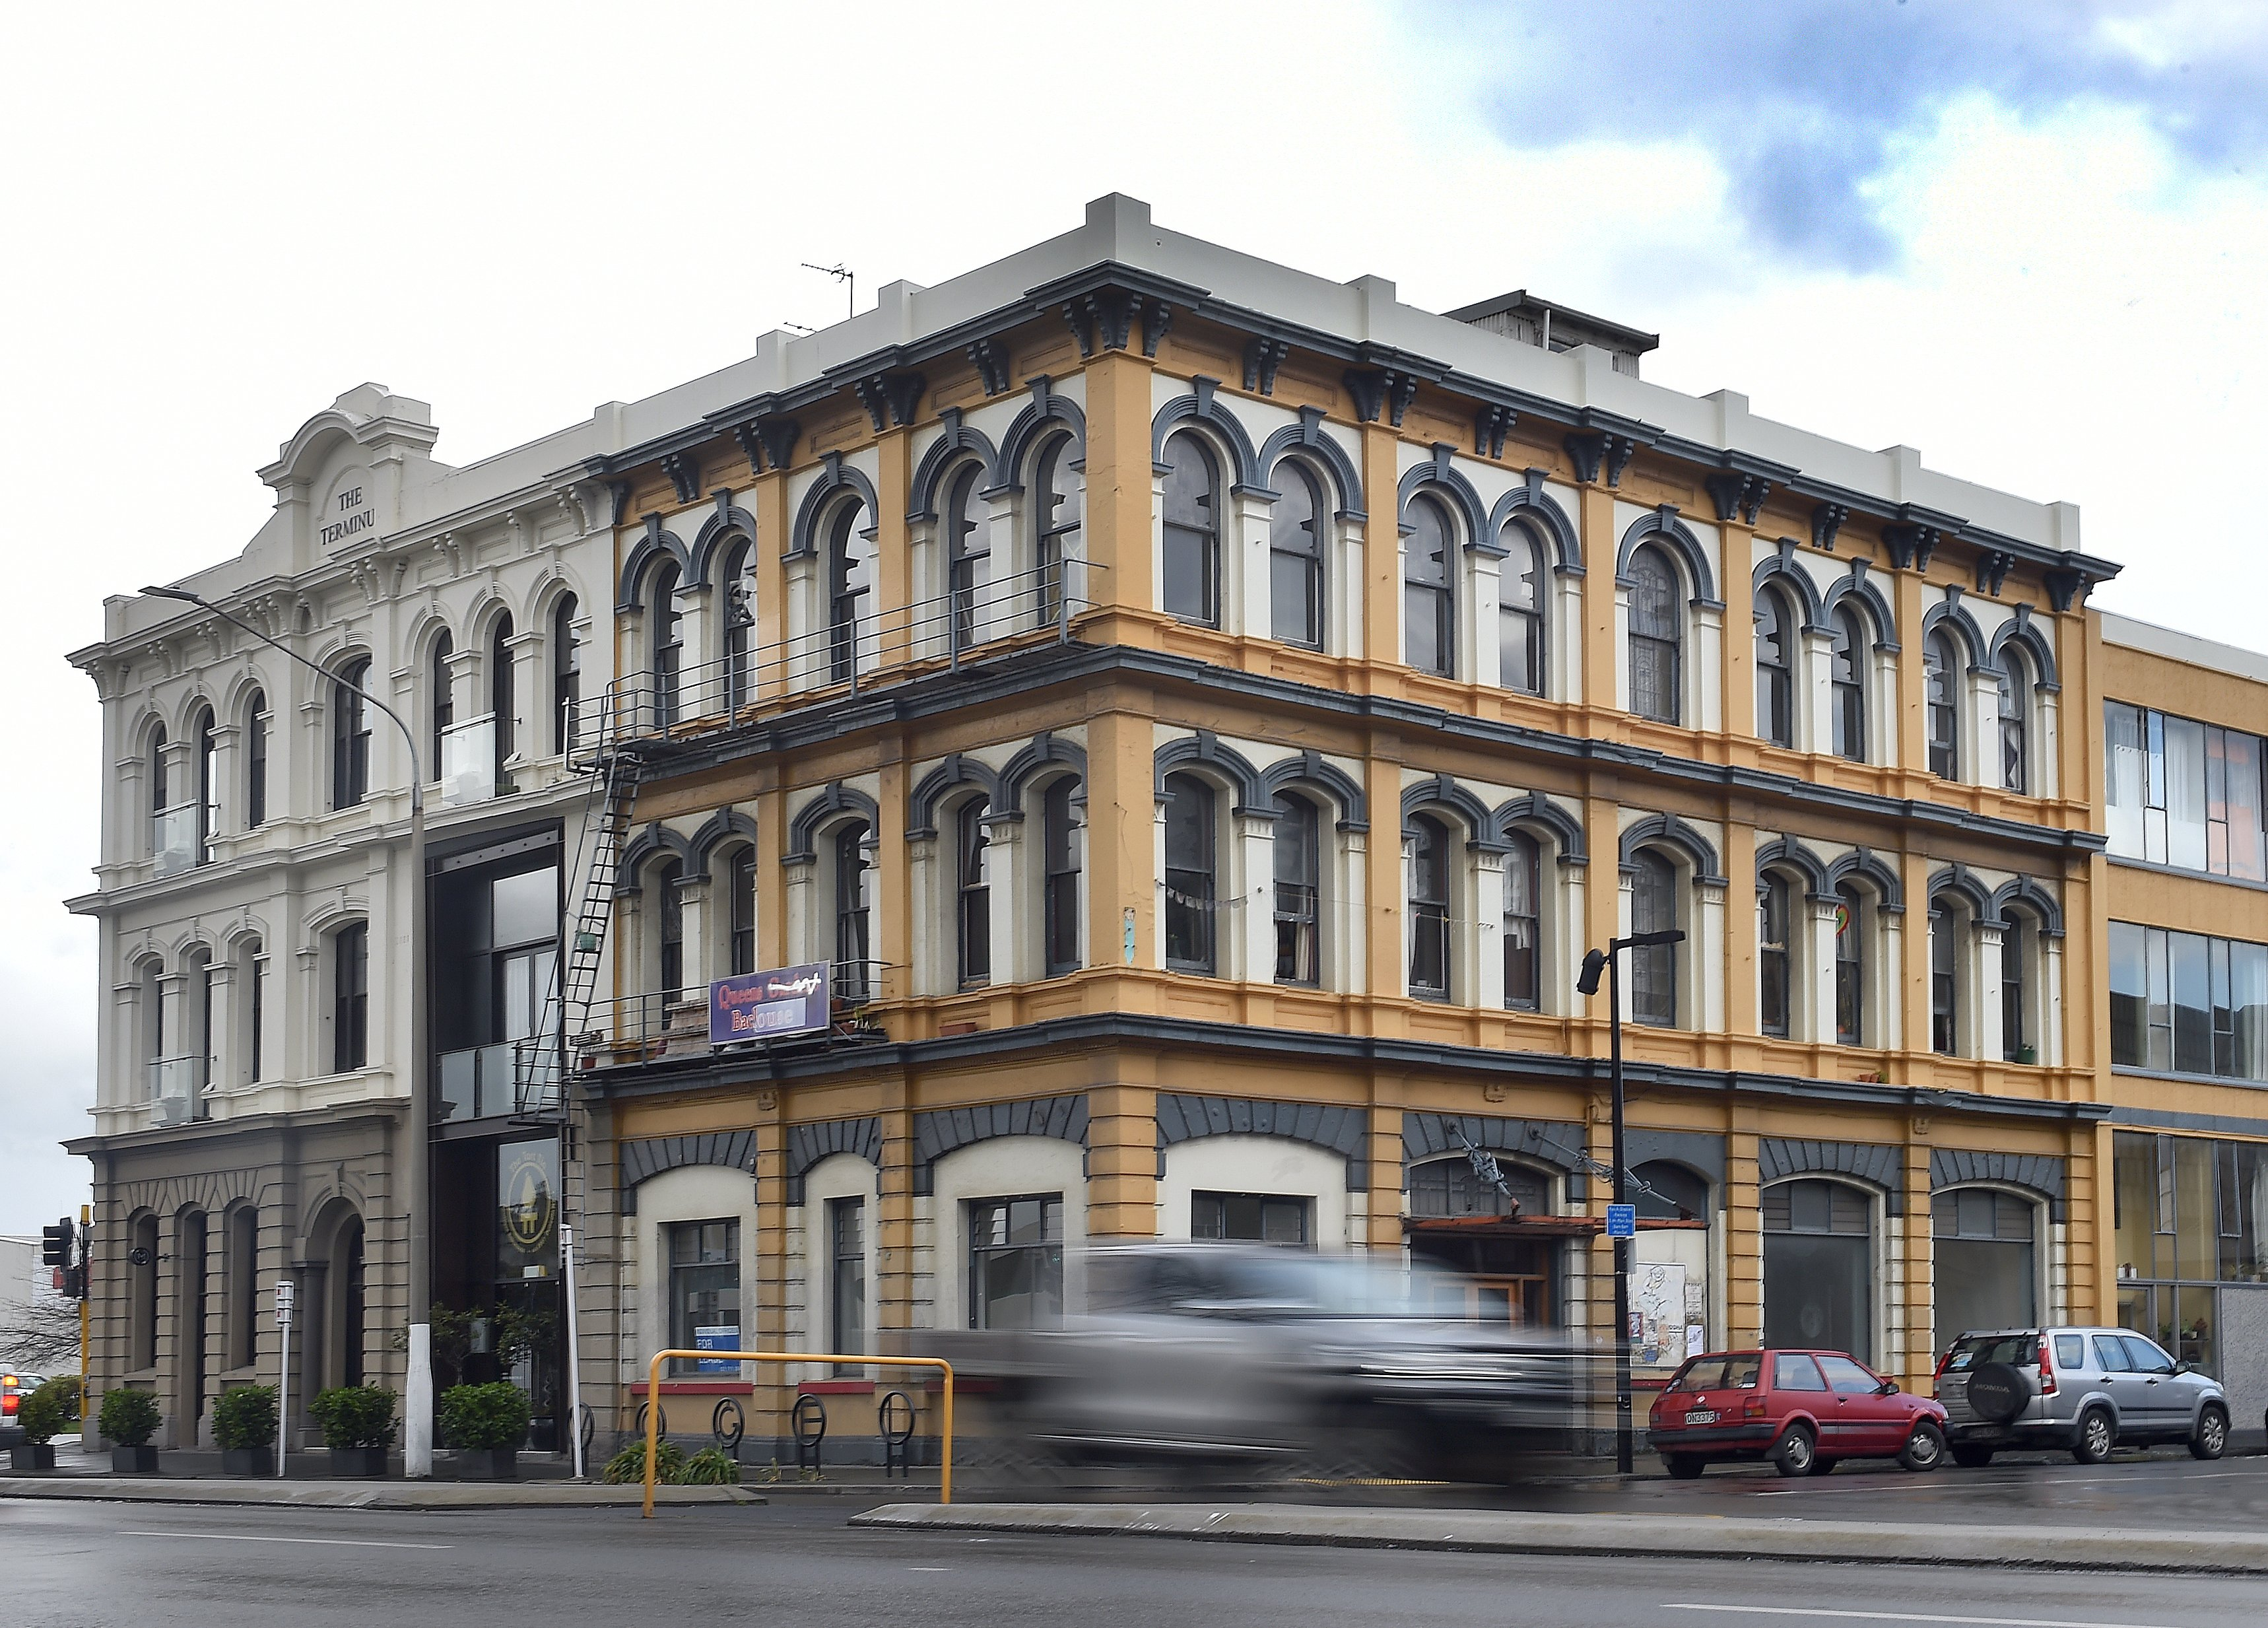 The building at the intersection of Vogel St and Queens Gardens. PHOTO: PETER MCINTOSH